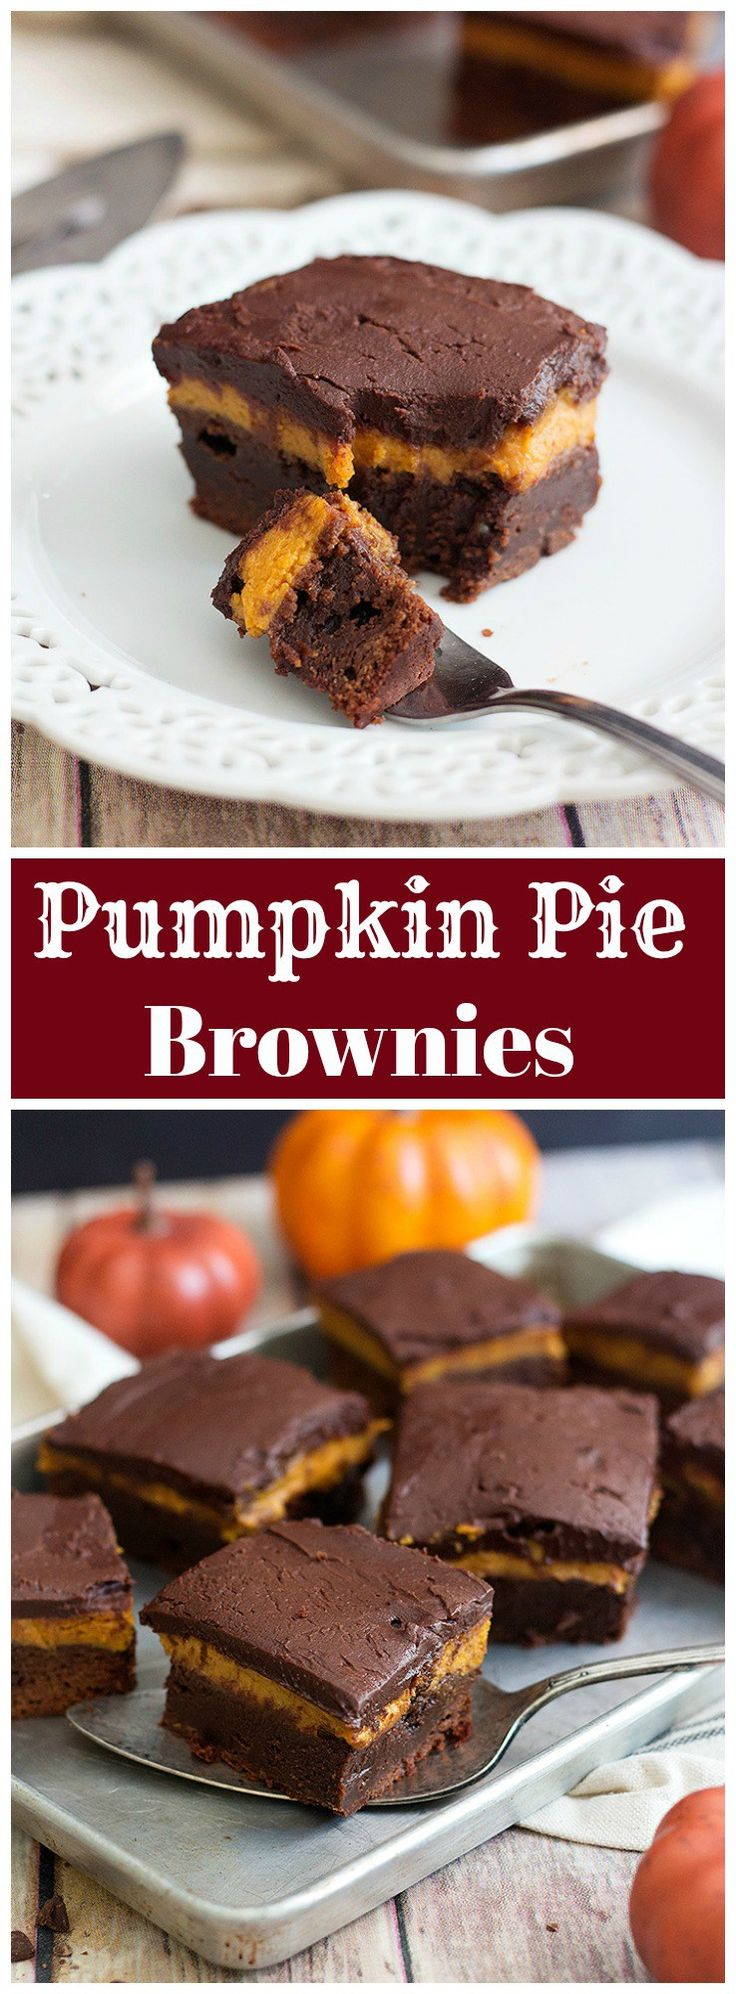 Have the best of both worlds with these Pumpkin Pie Brownies. Gooey brownies topped with pumpkin pie filling and luscious ganache tastes great!